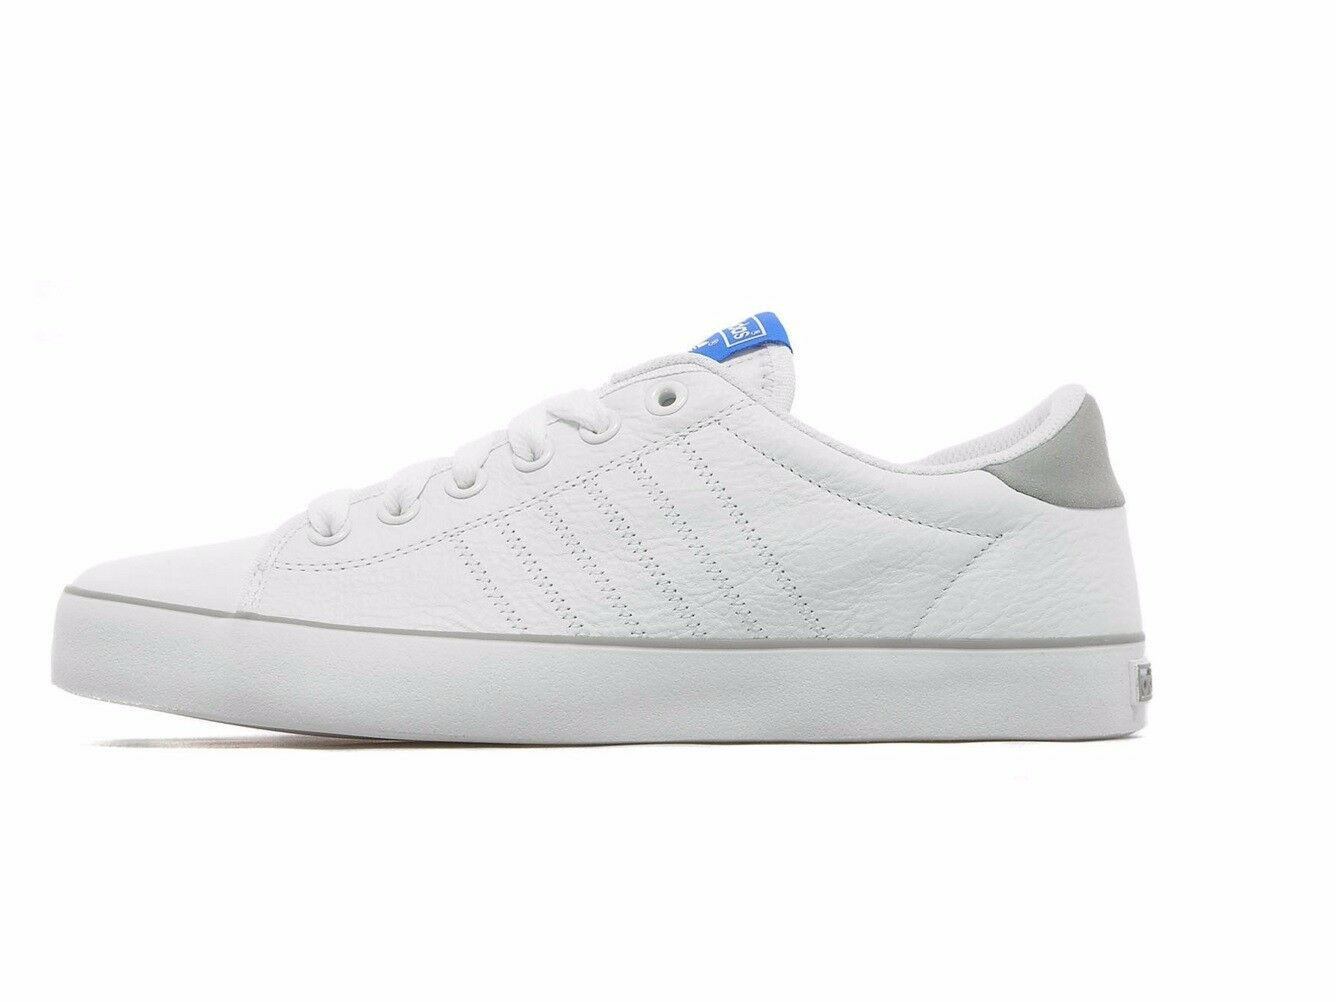 adidas INDOOR TENNIS TRBINERS MEN'S SHOES SNEBKERS SIZE 12 WHITE NEW RRP £67/-